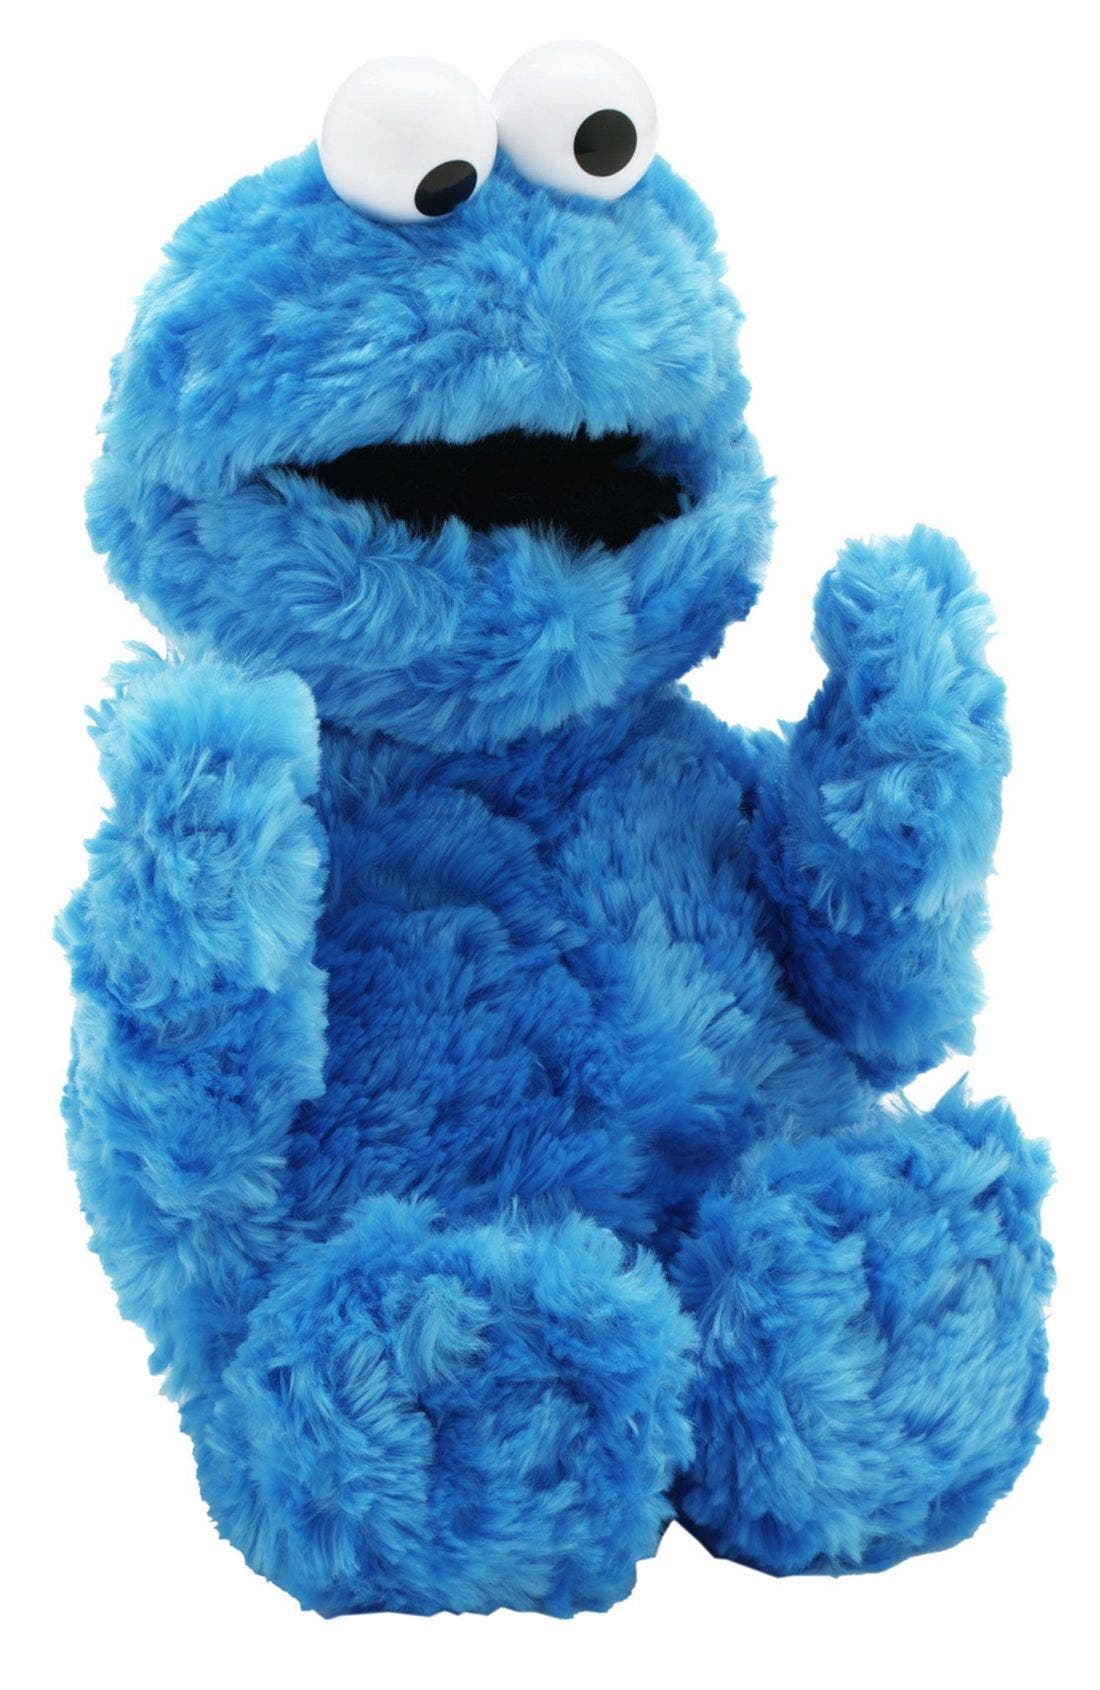 GUND Sesame Street Plush Toy, Main, color, BRB